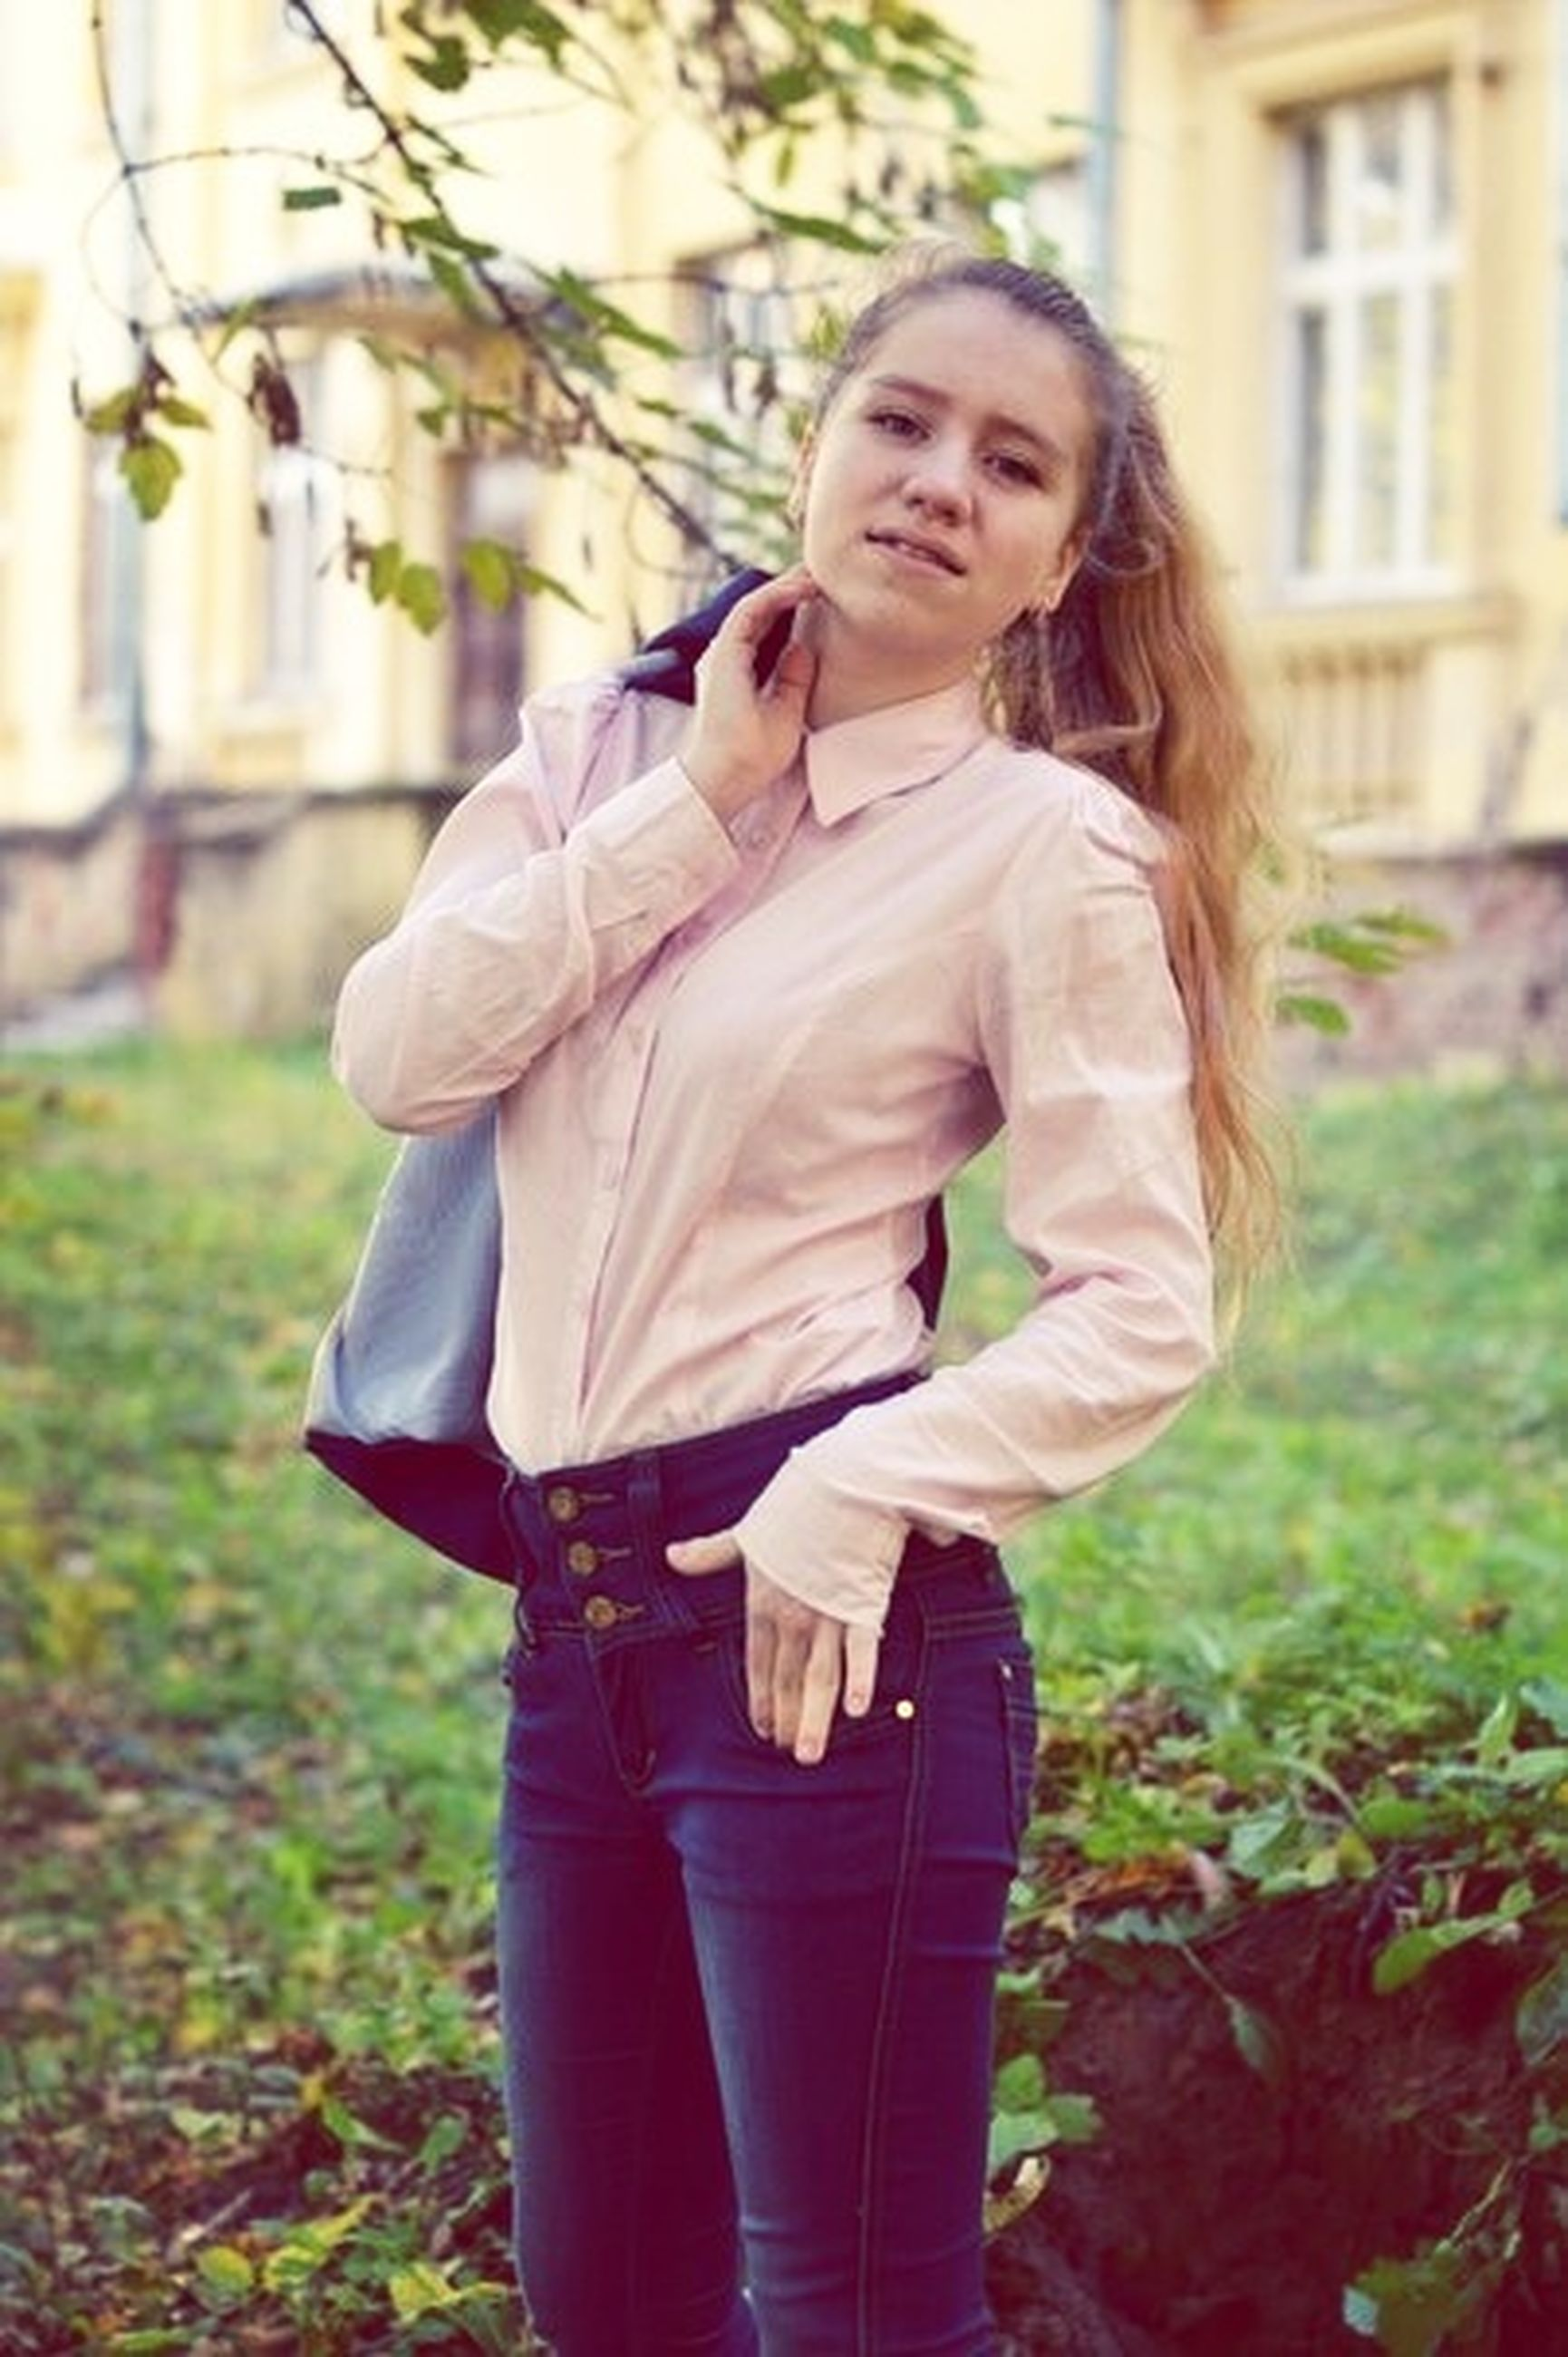 person, casual clothing, lifestyles, grass, three quarter length, young adult, leisure activity, young women, focus on foreground, standing, full length, smiling, field, park - man made space, long hair, front view, waist up